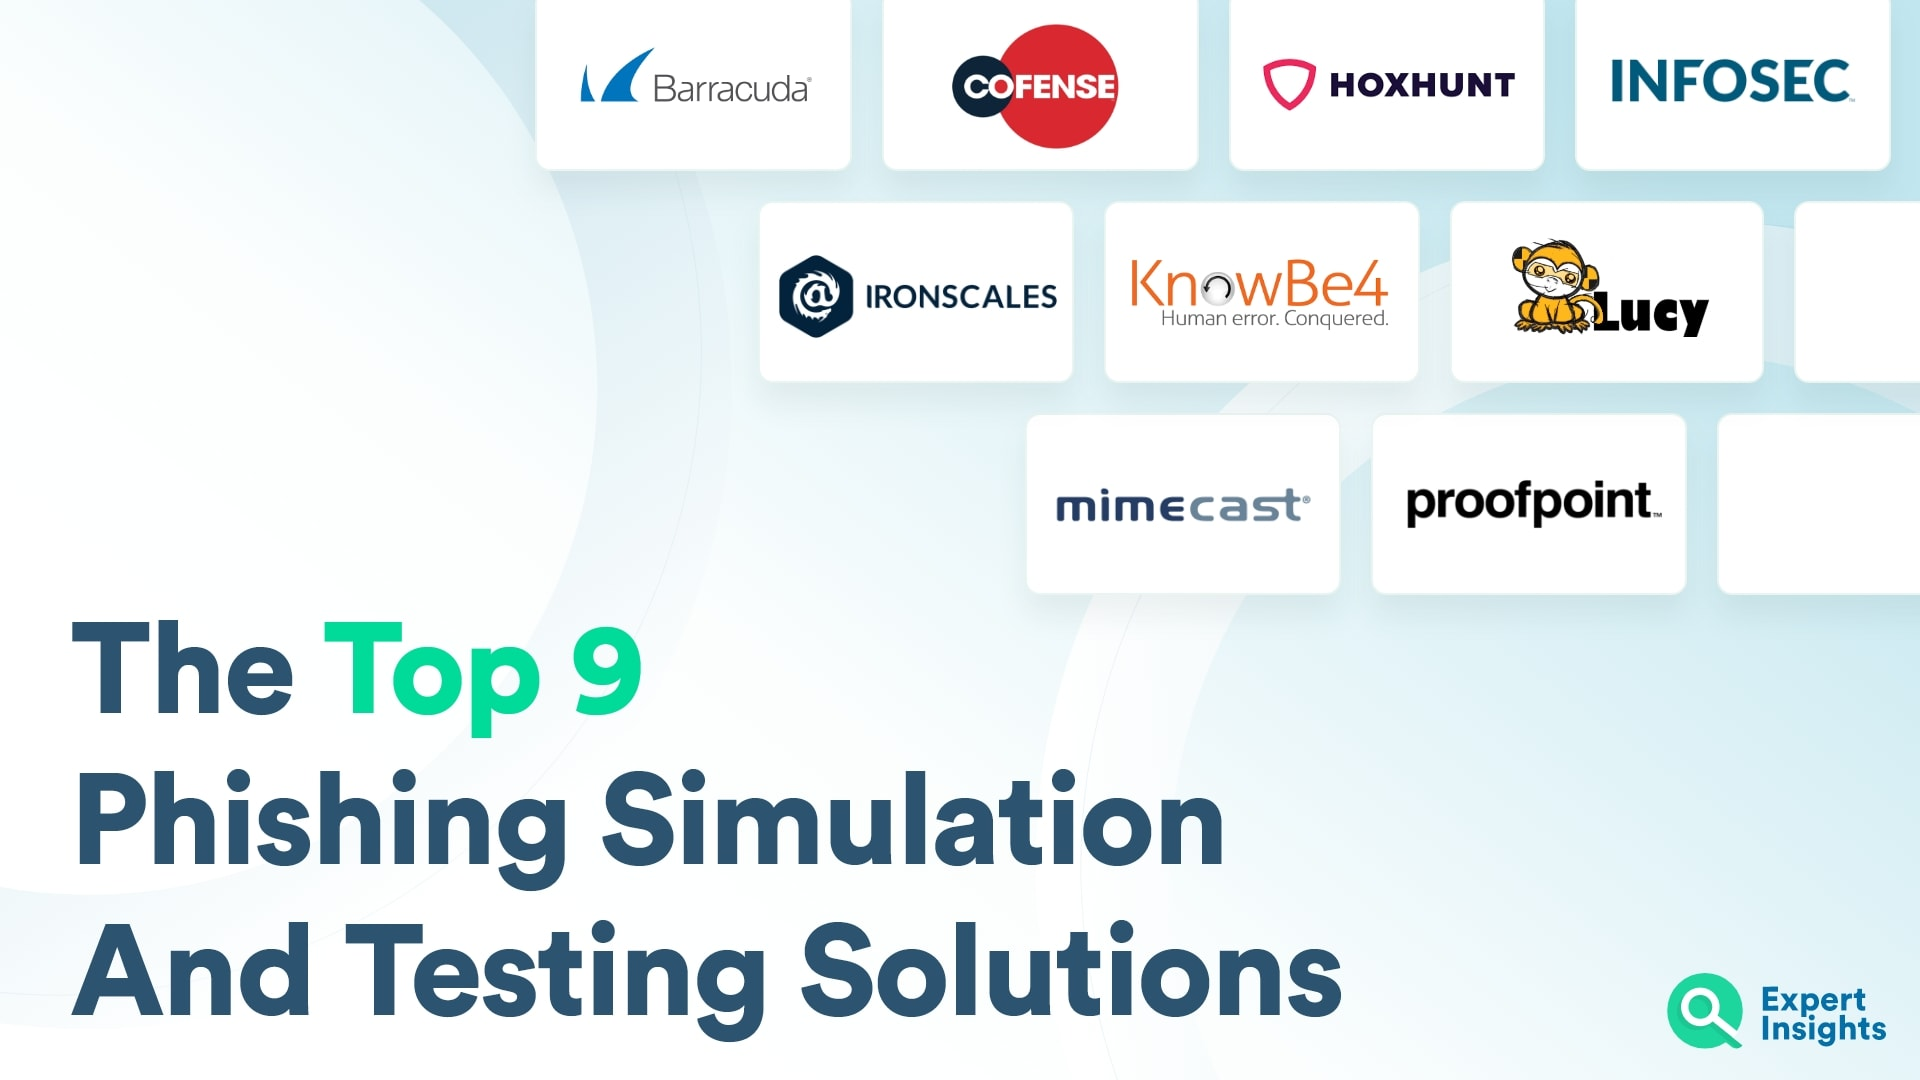 The Top 9 Phishing Simulation And Testing Solutions - Expert Insights